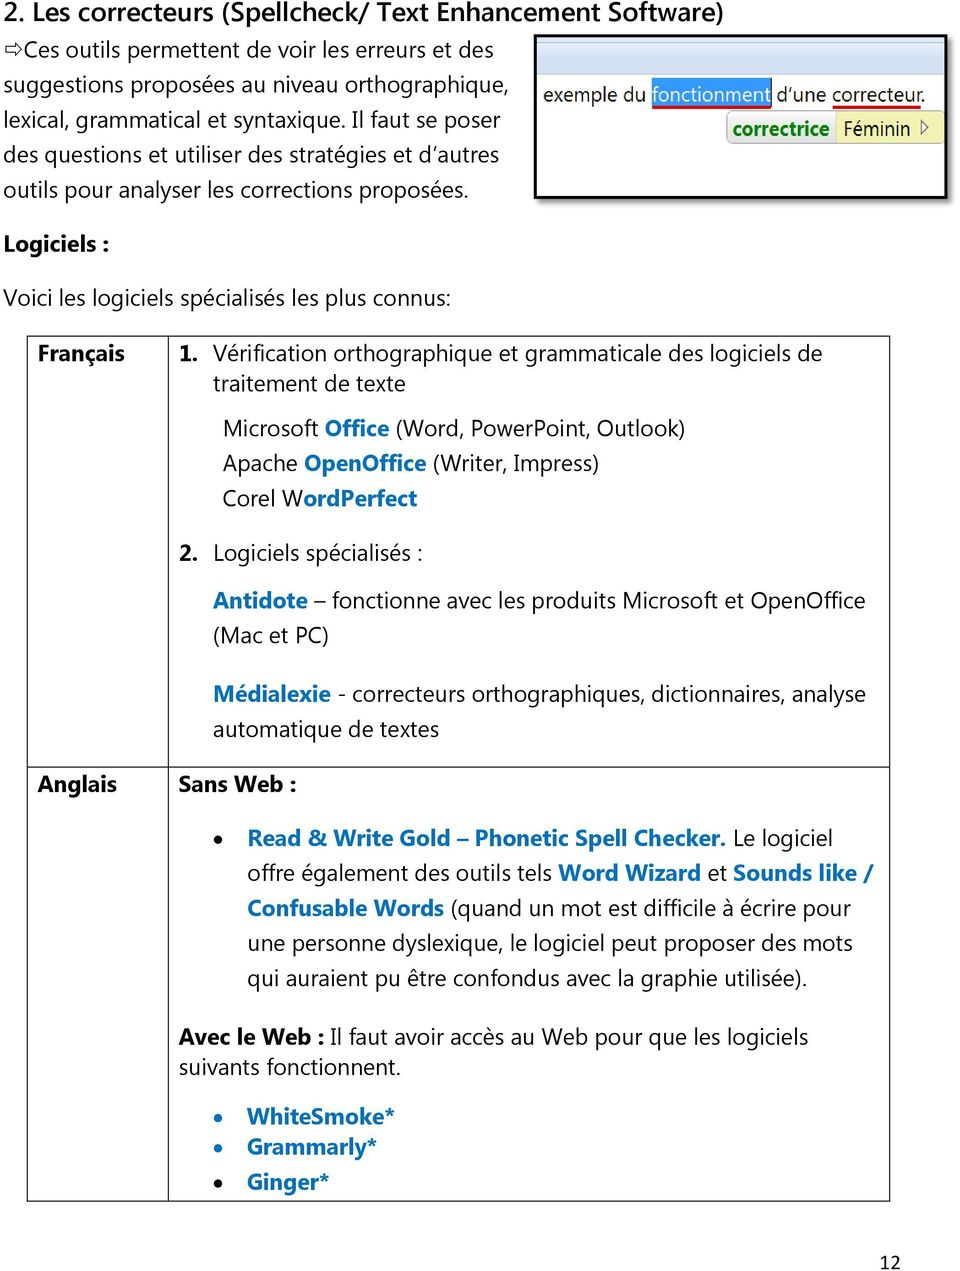 Vérification orthographique et grammaticale des logiciels de traitement de texte Microsoft Office (Word, PowerPoint, Outlook) Apache OpenOffice (Writer, Impress) Corel WordPerfect 2.